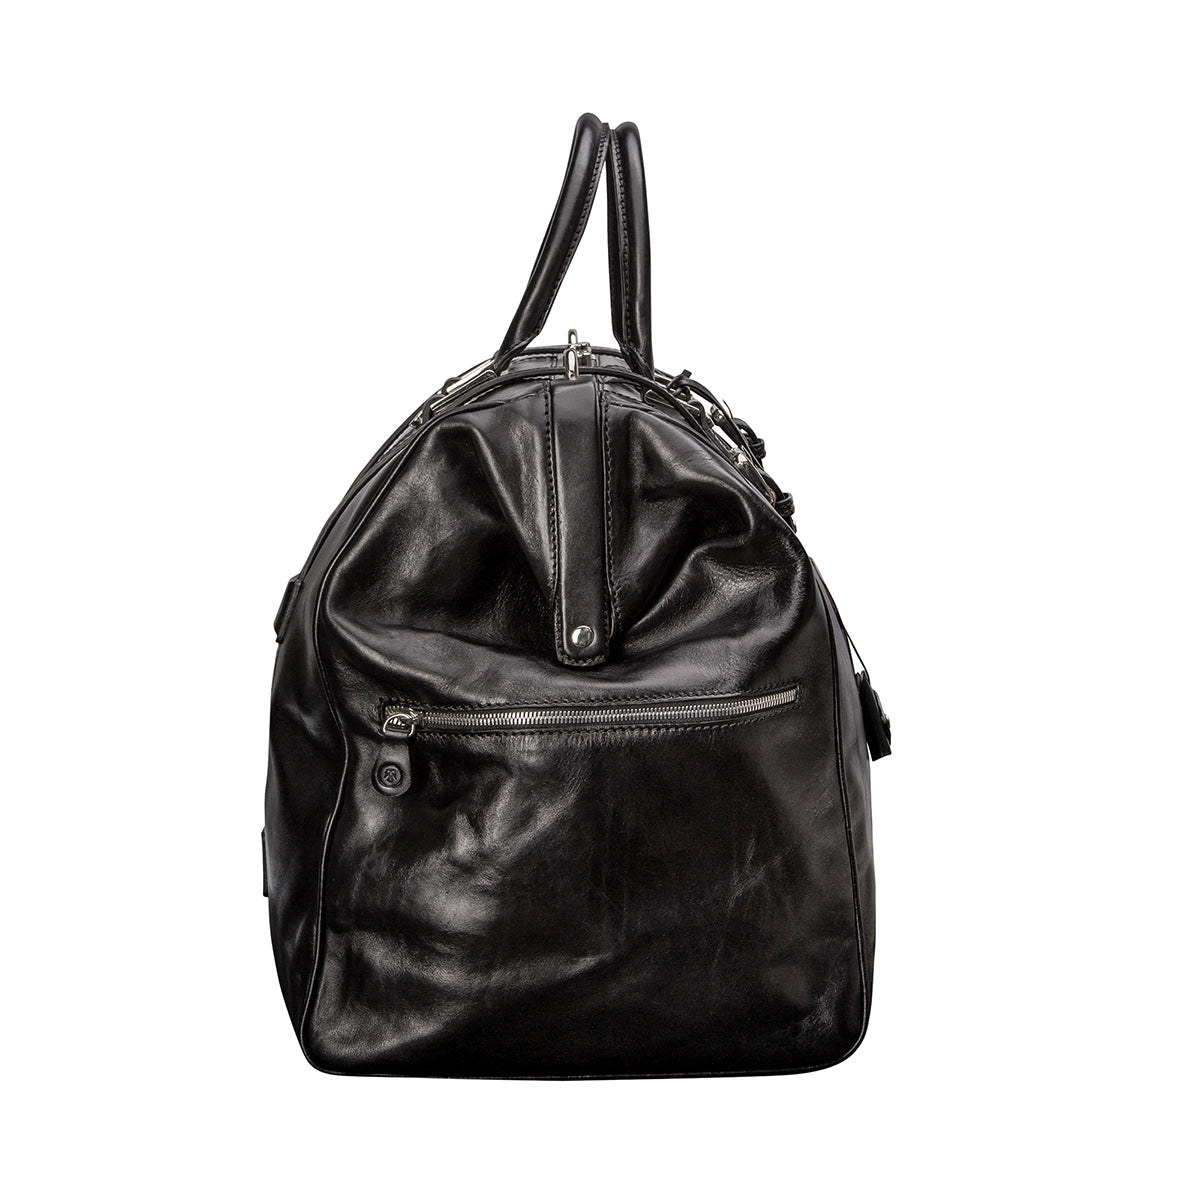 Image 3 of the 'Gassano L' Black Veg-Tanned Leather Holdall